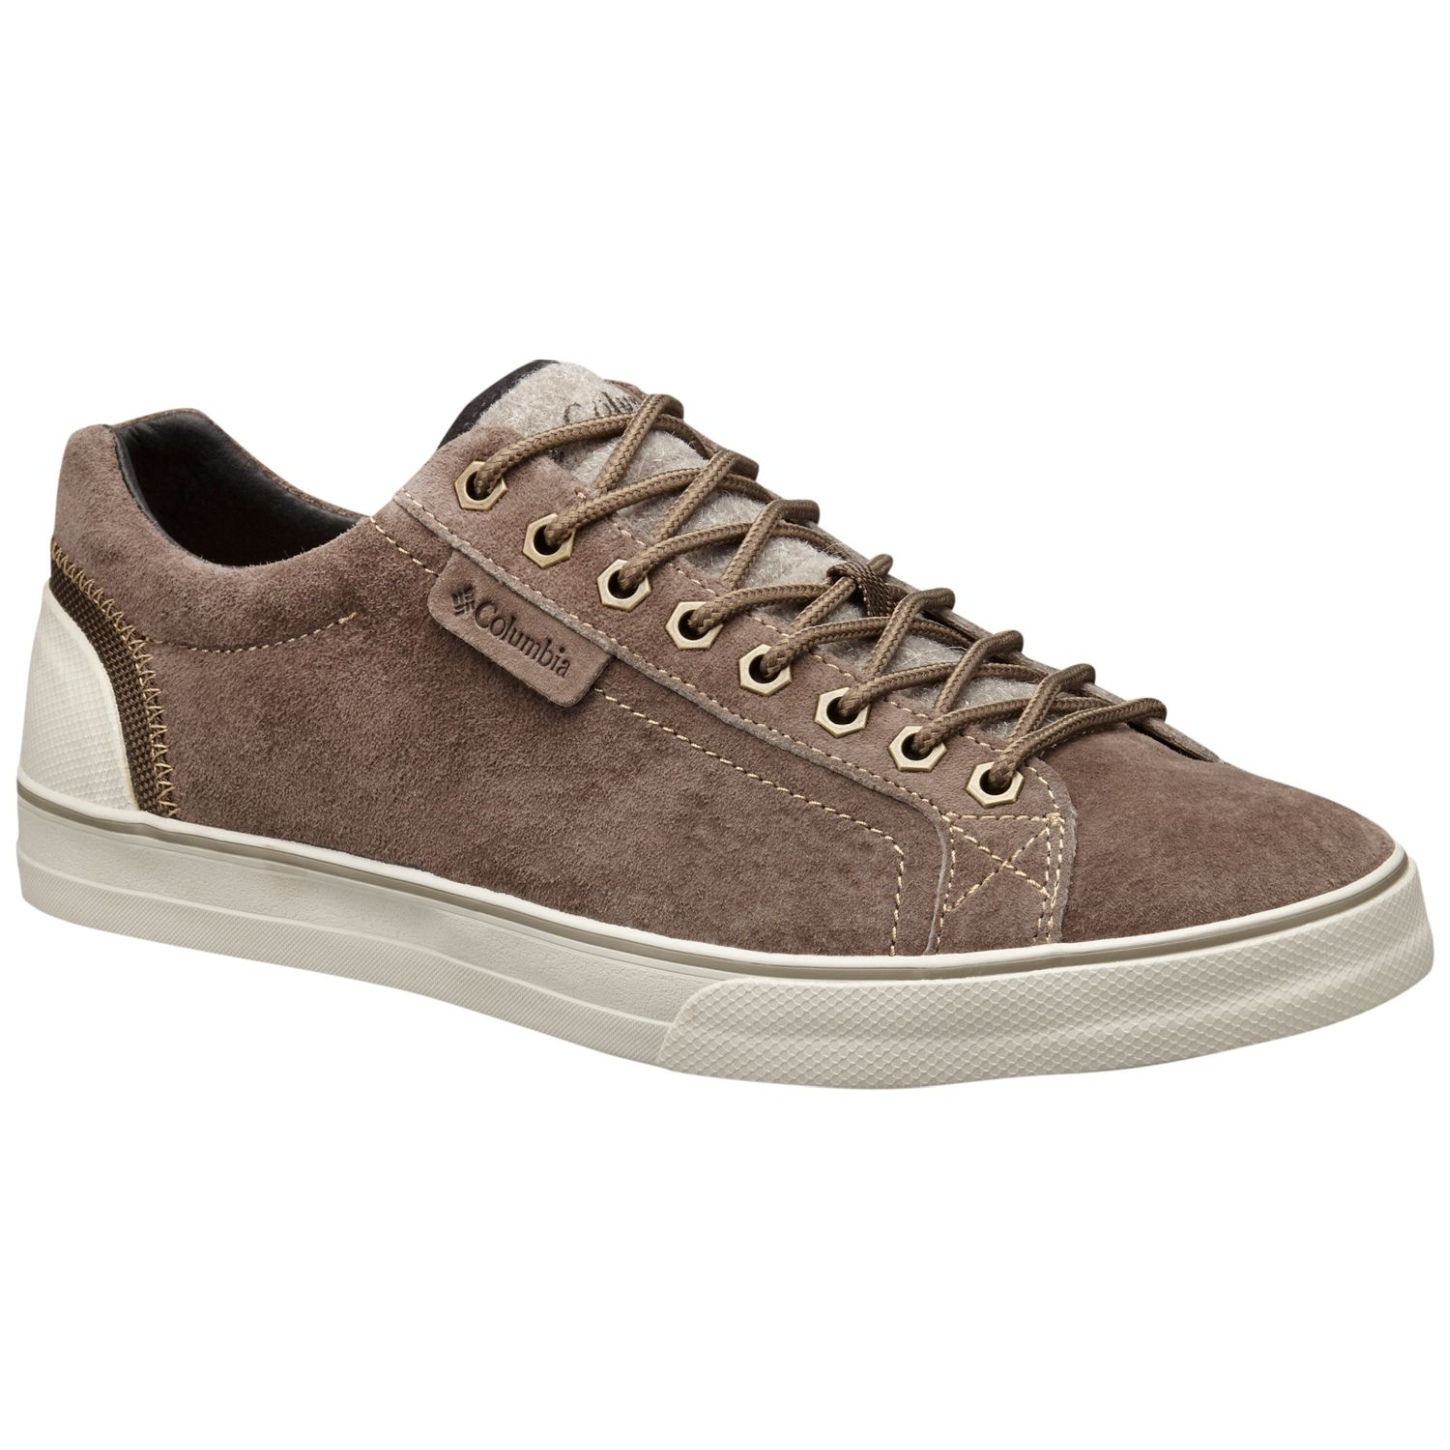 Columbia Vulc Camp 4 Winter Sneakers für Herren Mud, Bright Copper-30